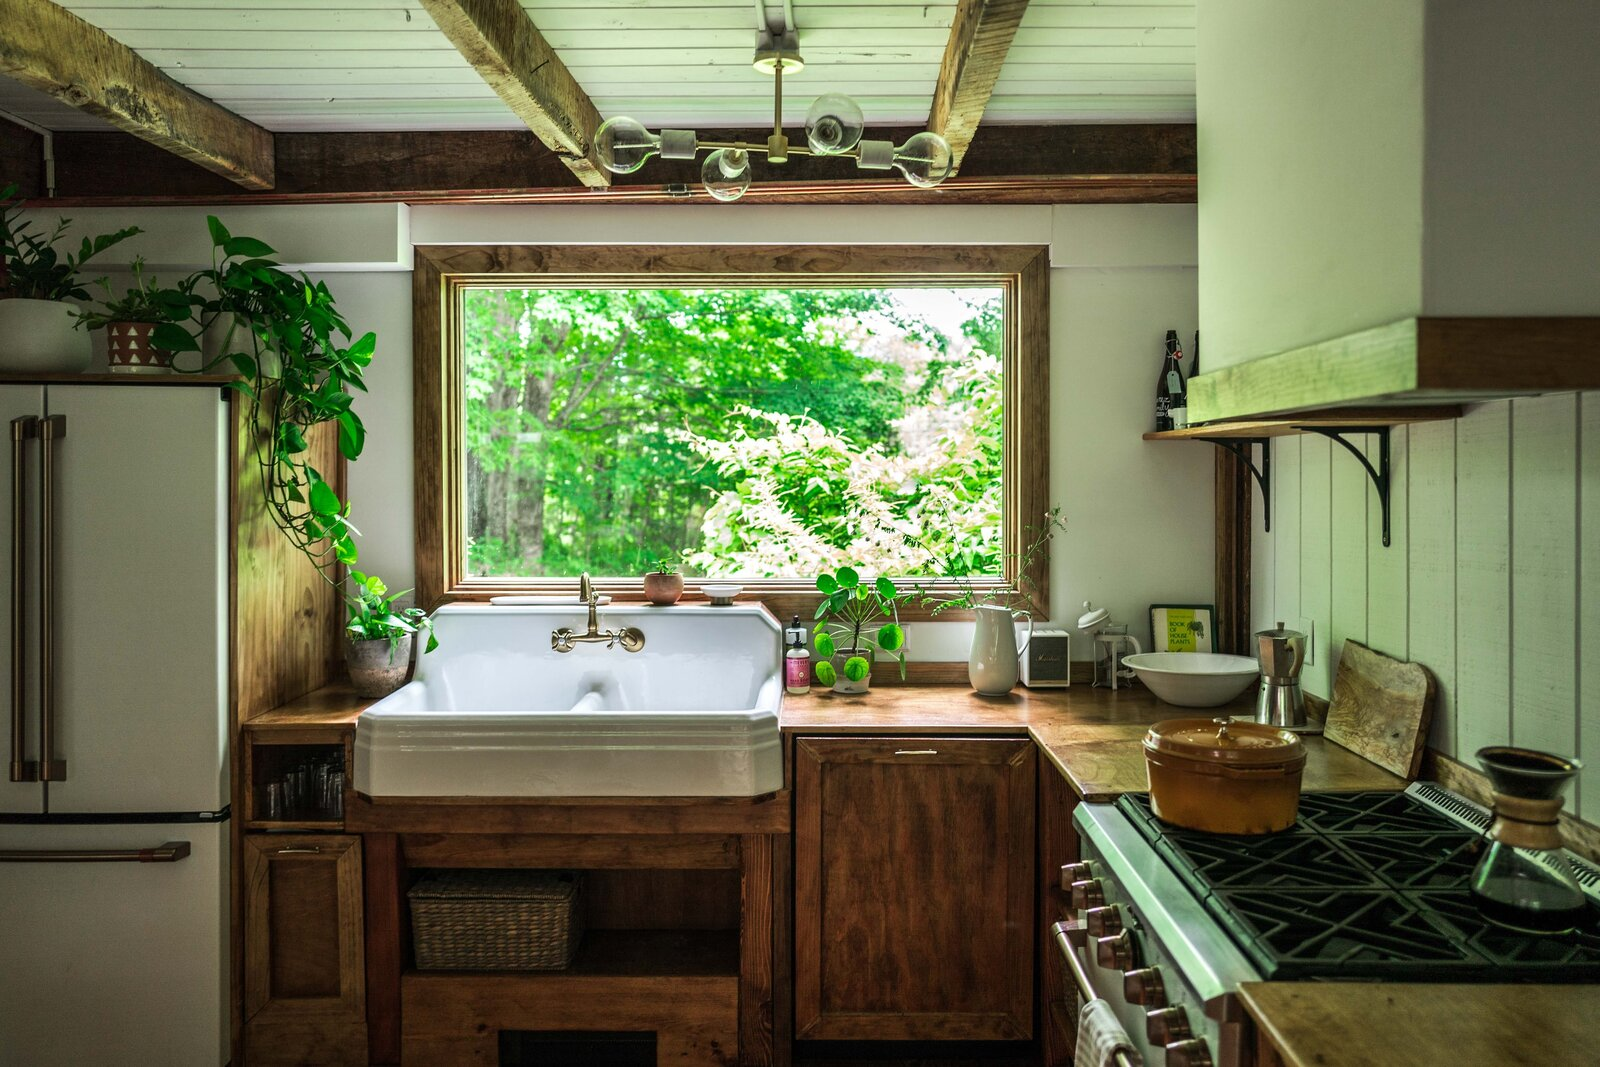 The Hunter Barnhouse by Danielle and Ely Franko kitchen with farmhouse sink